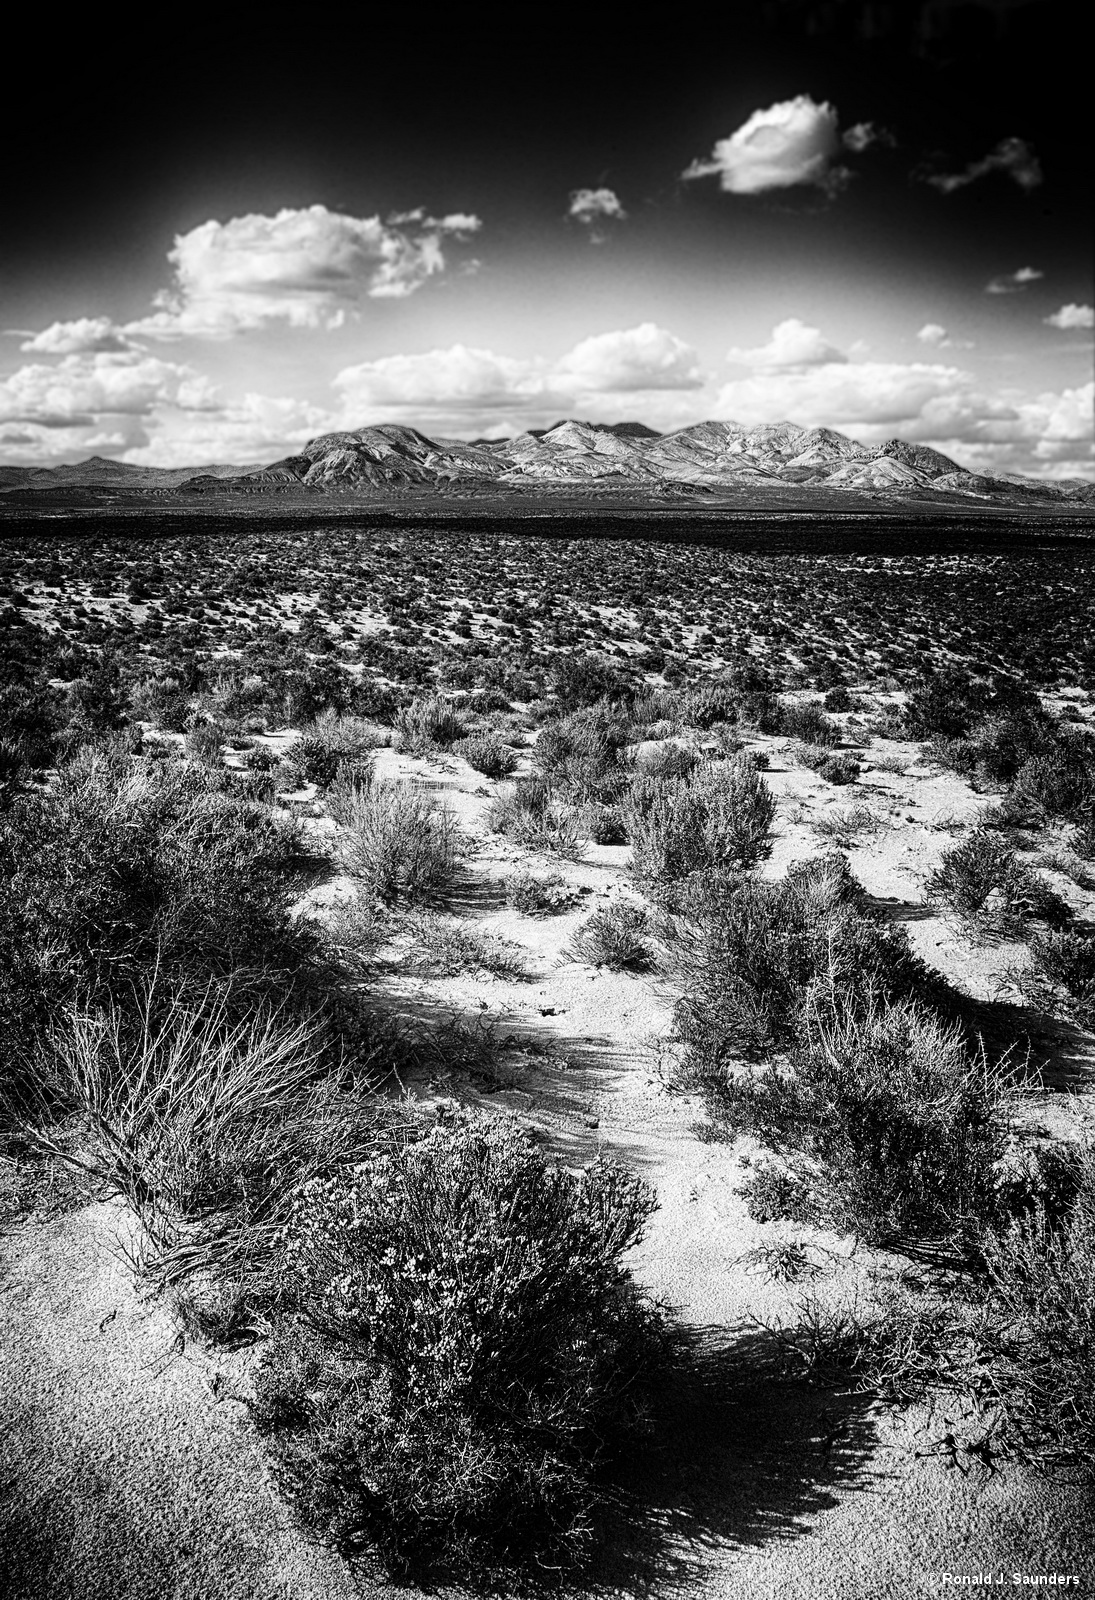 Ron, Ronald, Saunders, photography, black, white, desert, Black Rock, Nevada, Landscape, mountains, exhibition, America, Art, Federation, artist, image, high rock,, photo